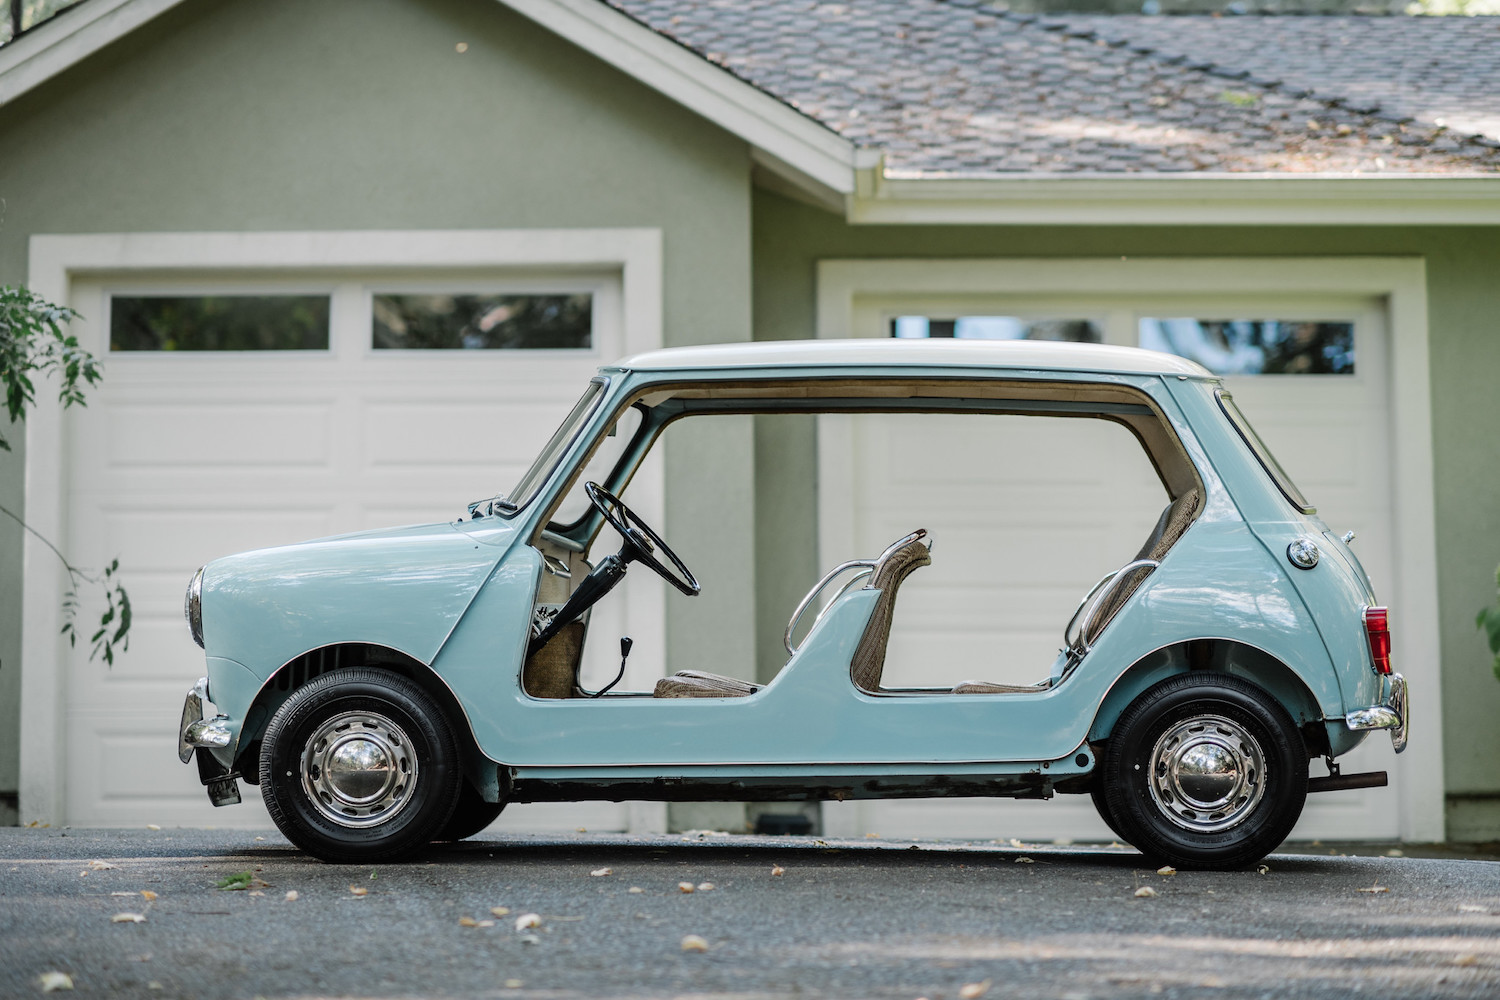 1962 Austin Mini Beach Car side-view